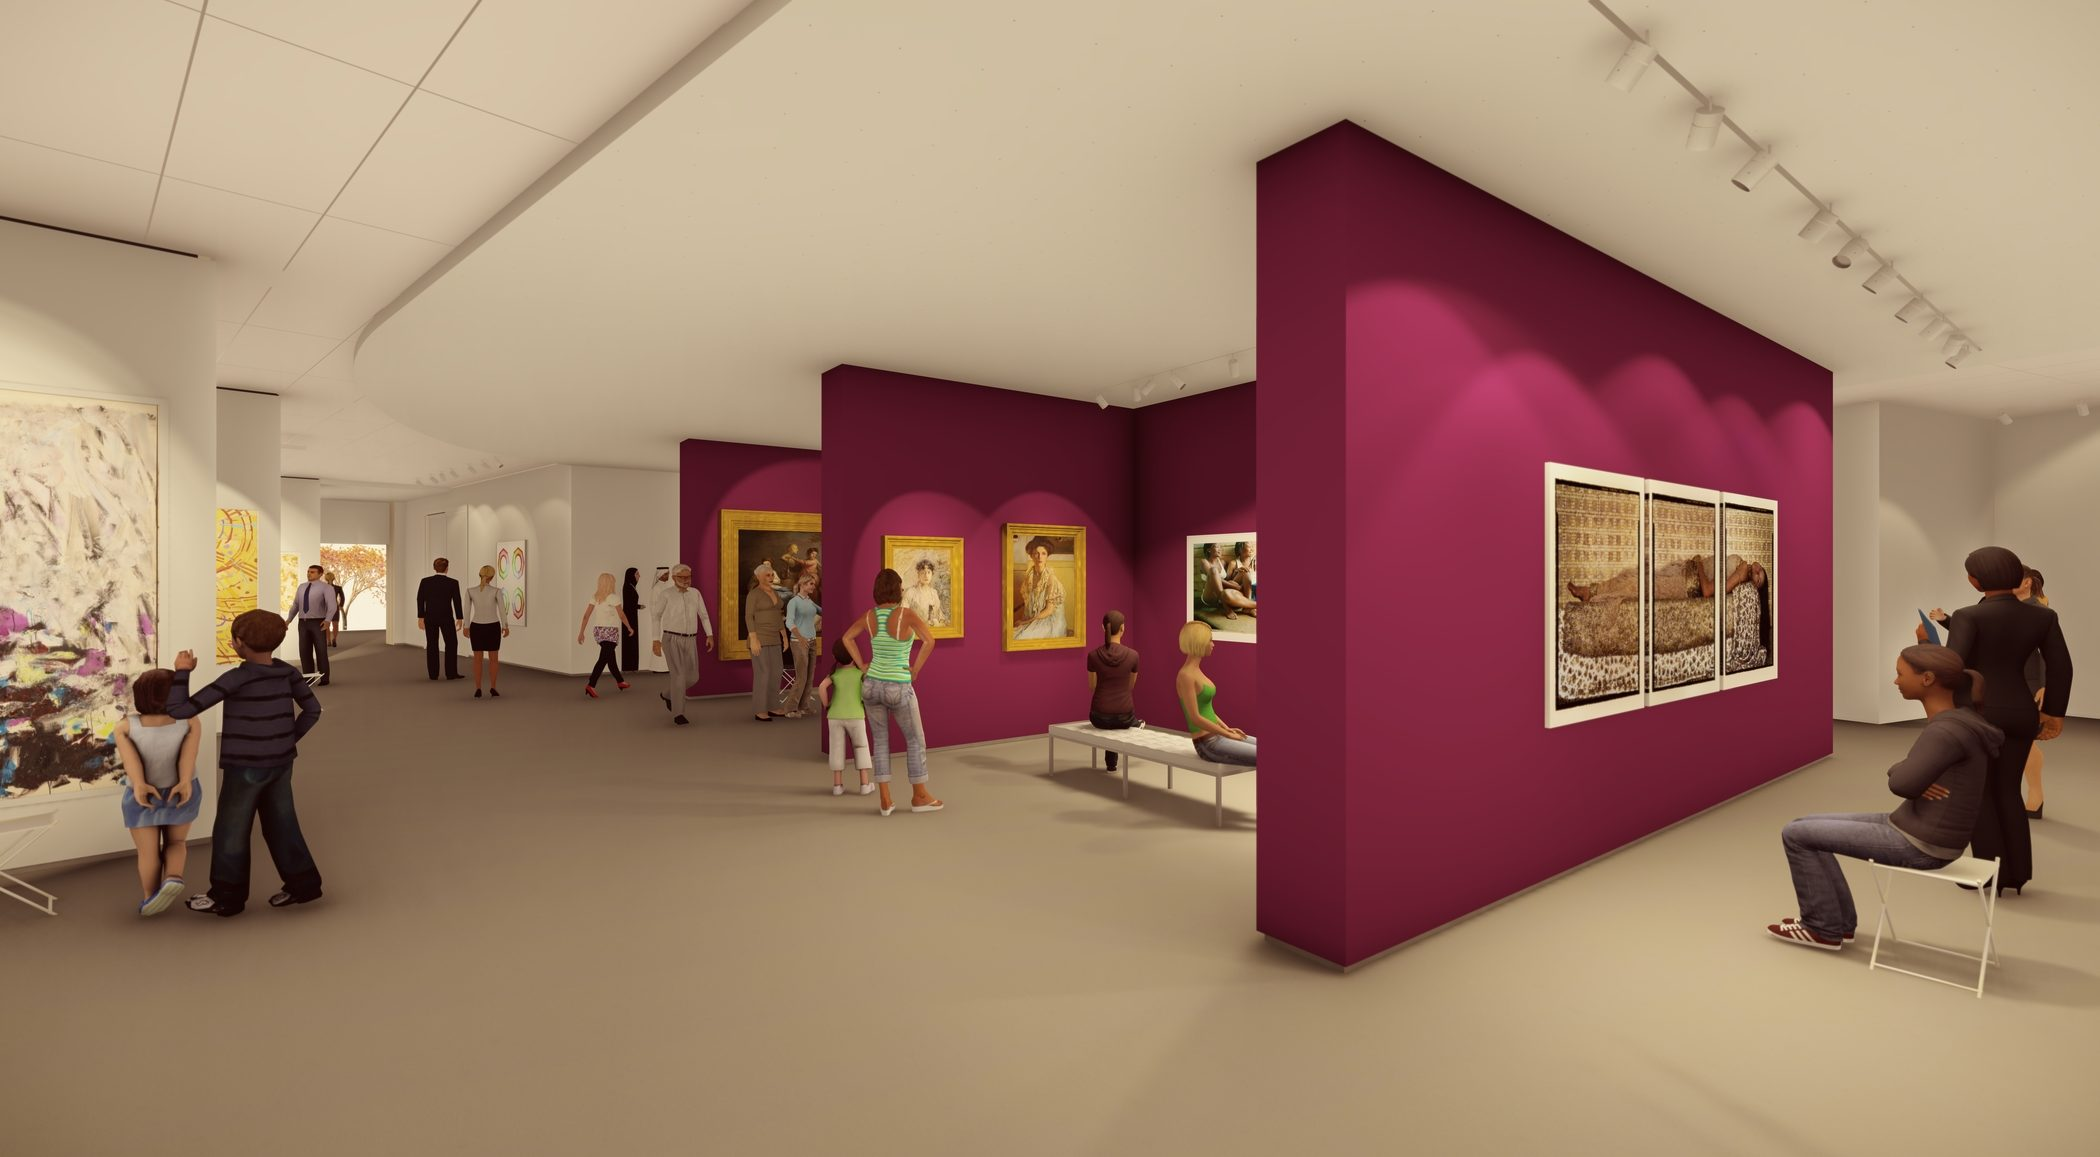 Architectural rendering of the gallery. People of all ages look at artwork hung on white and magenta walls.